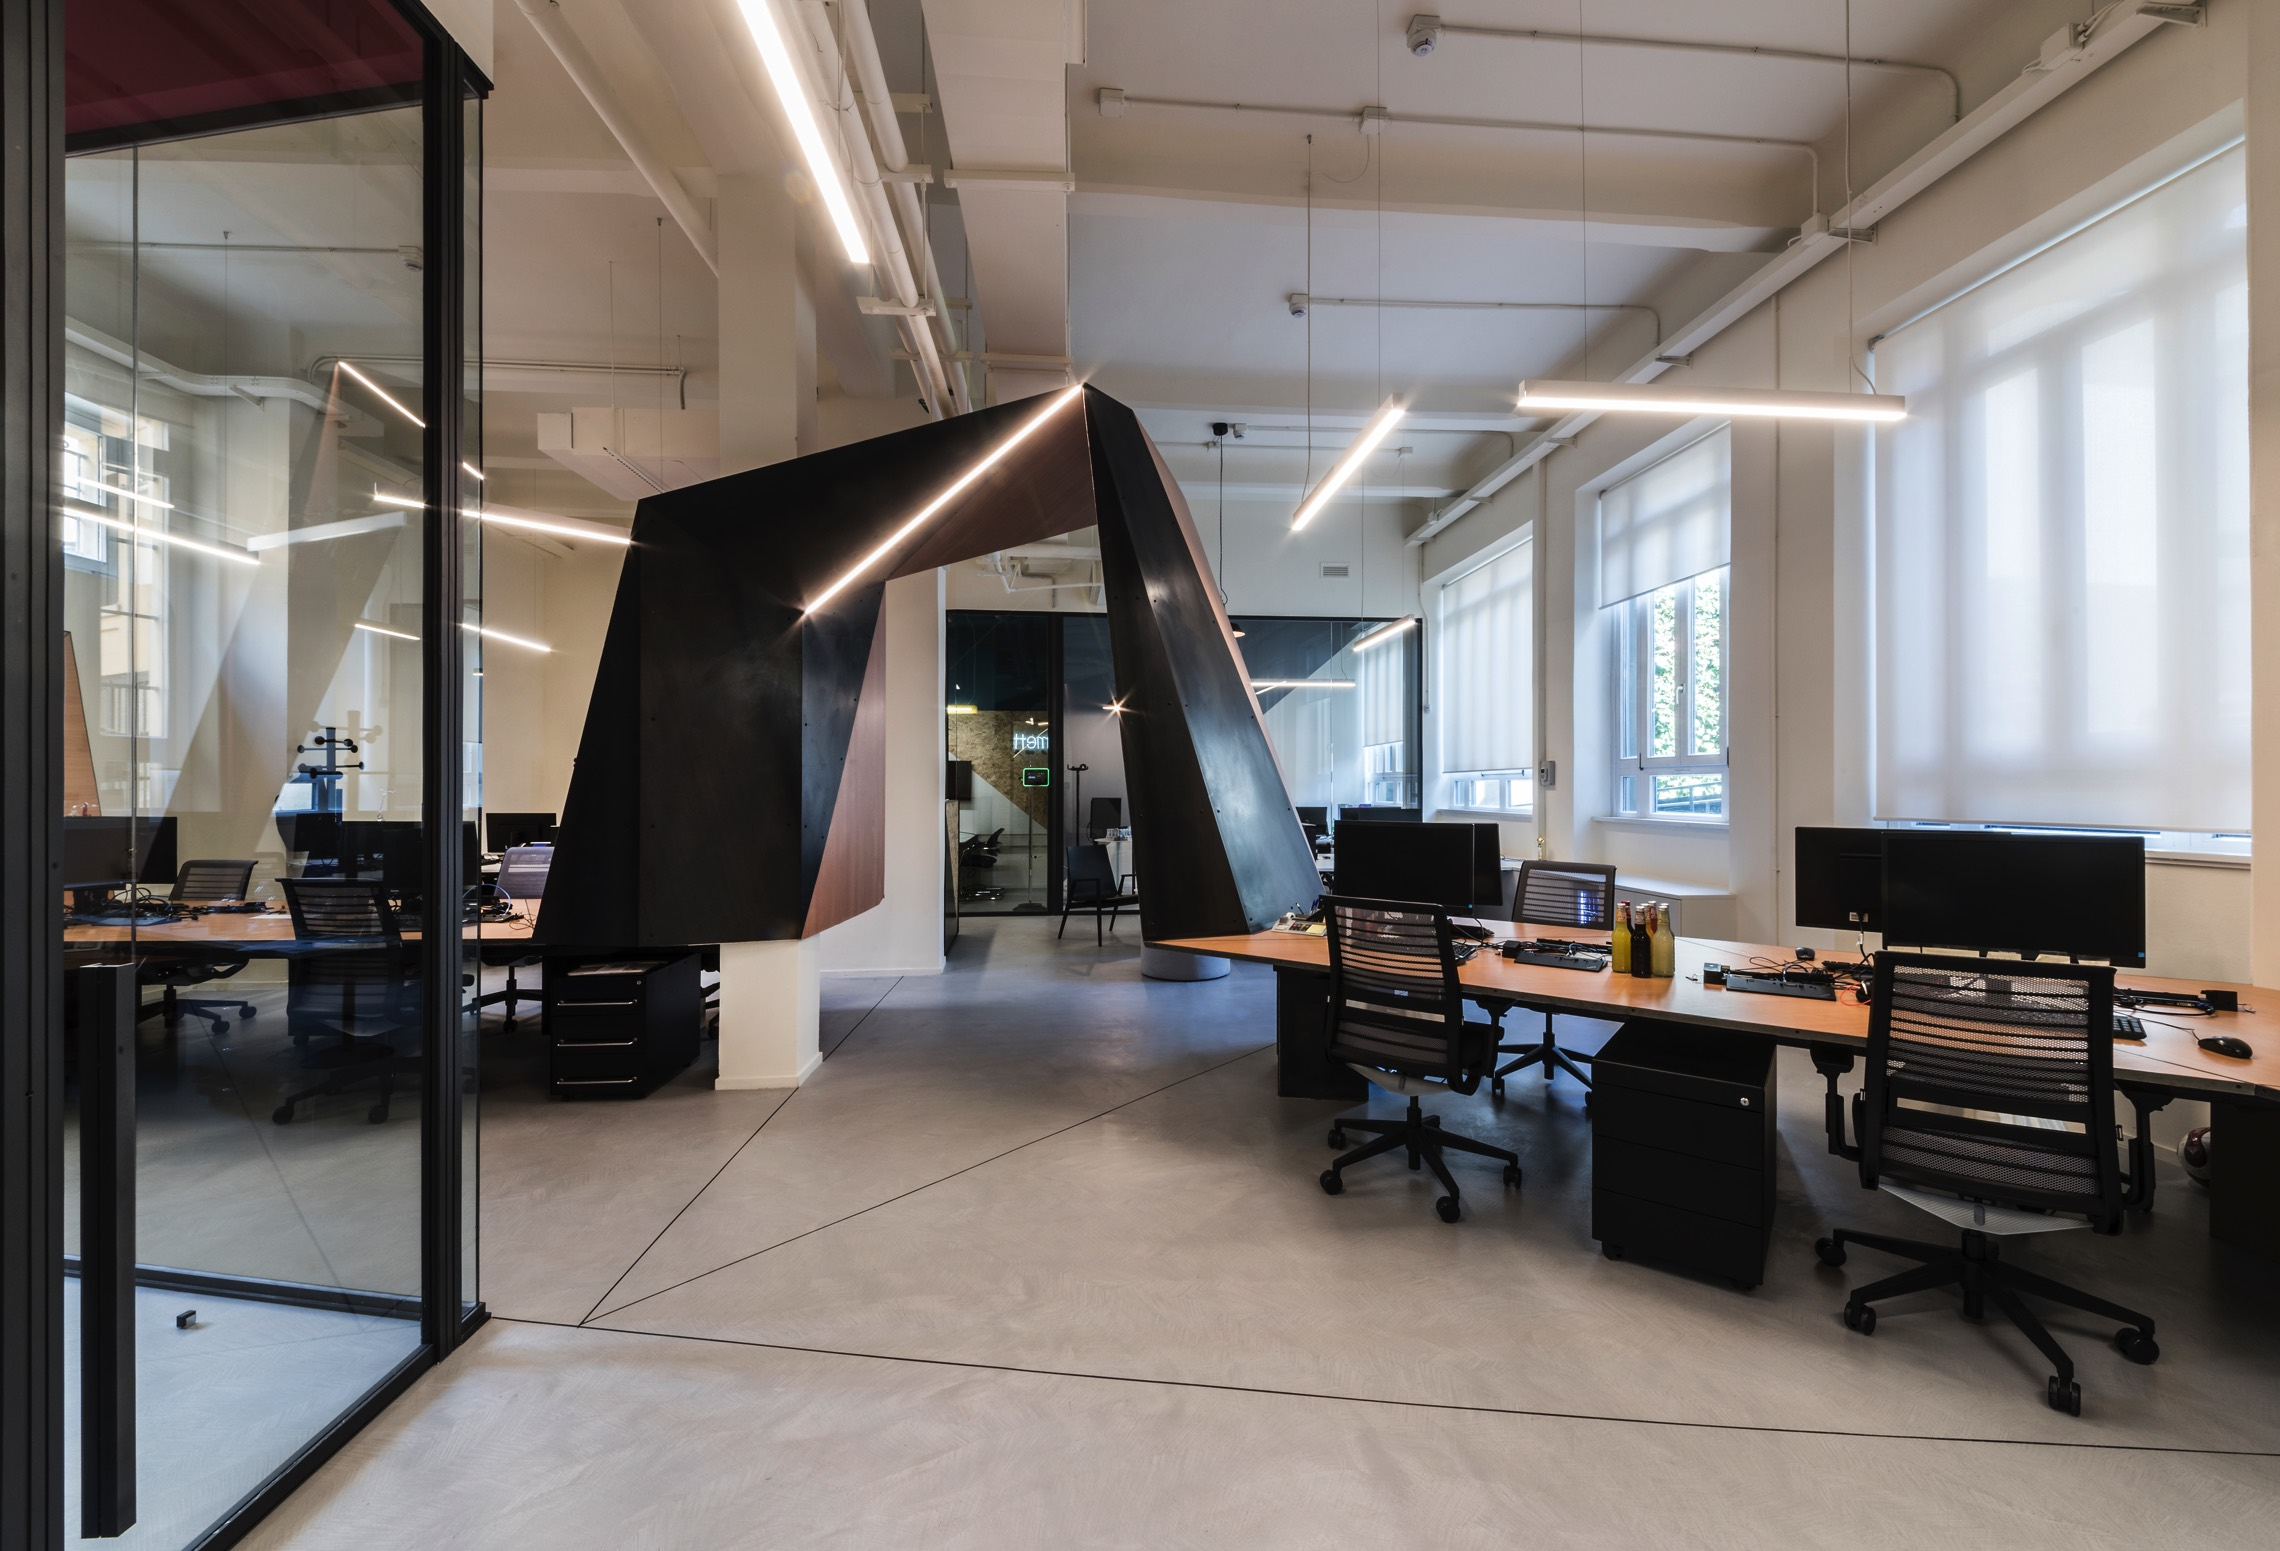 red bull corporate office. Credits: Red Bull Corporate Office